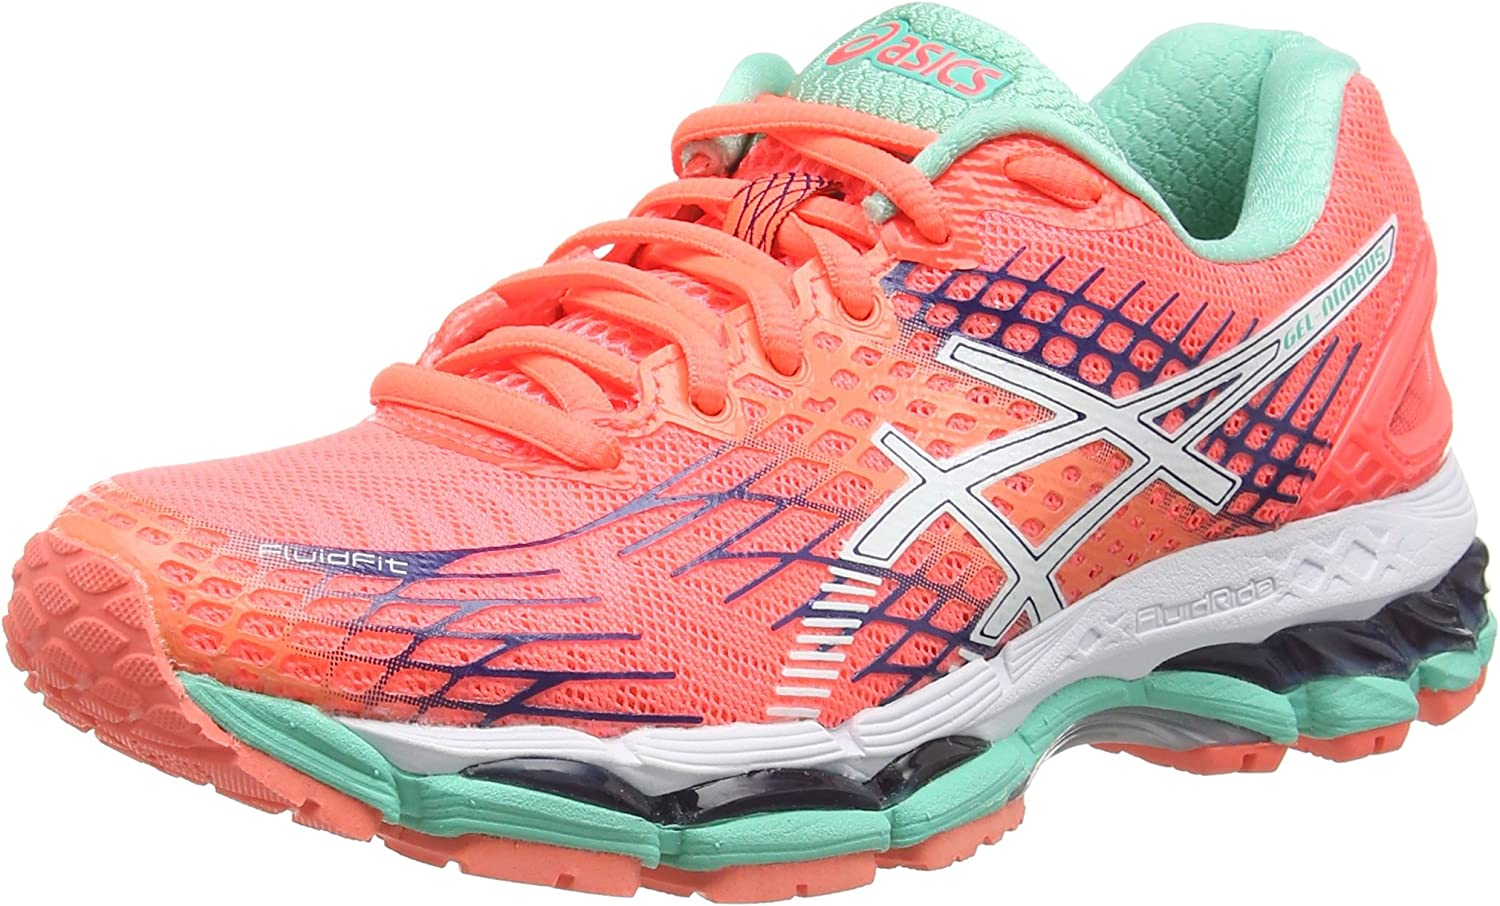 ASICS Gel-Nimbus 17 - Zapatillas de Running para Mujer, Color Rojo (Flash Coral/White/Indigo Blue 0601), Talla 35.5 EU (3 UK/5 US): Amazon.es: Zapatos y complementos